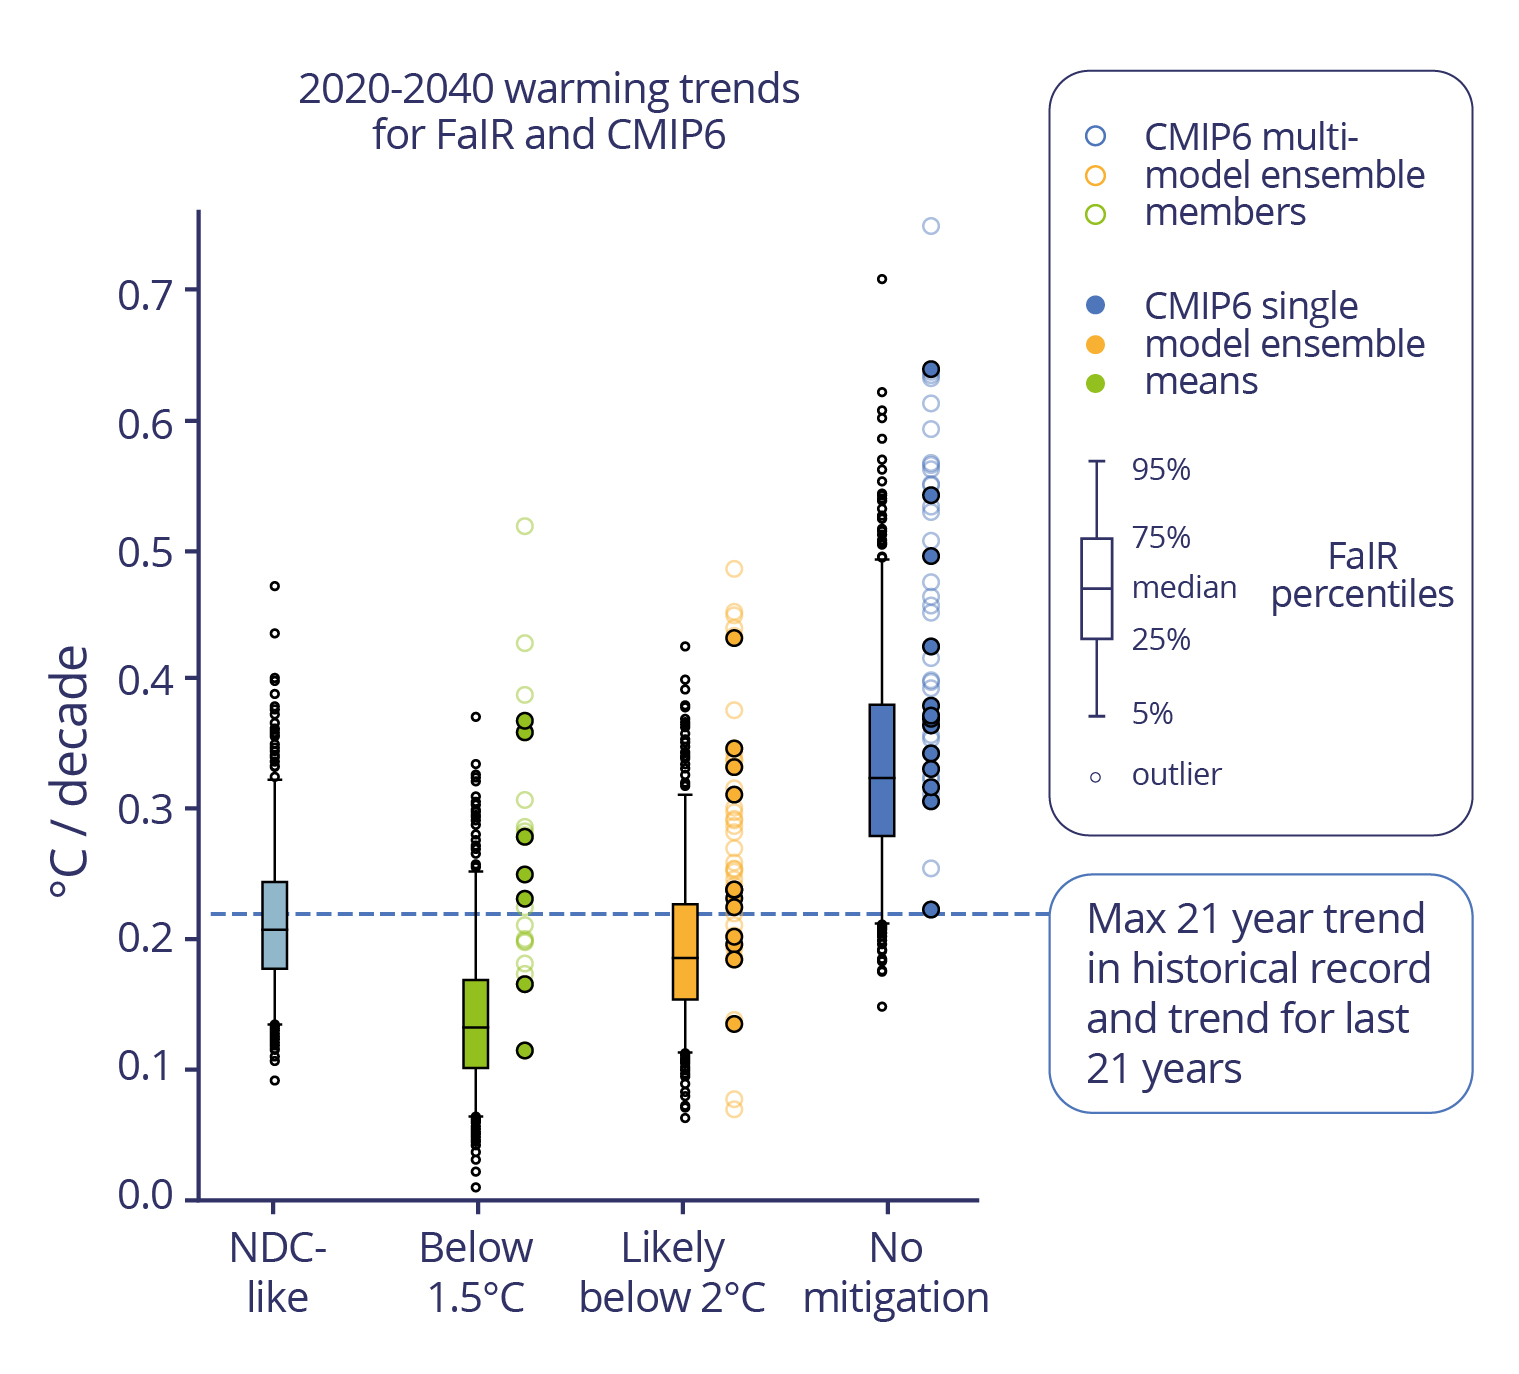 Figure 3 - Warming trends graphic v2